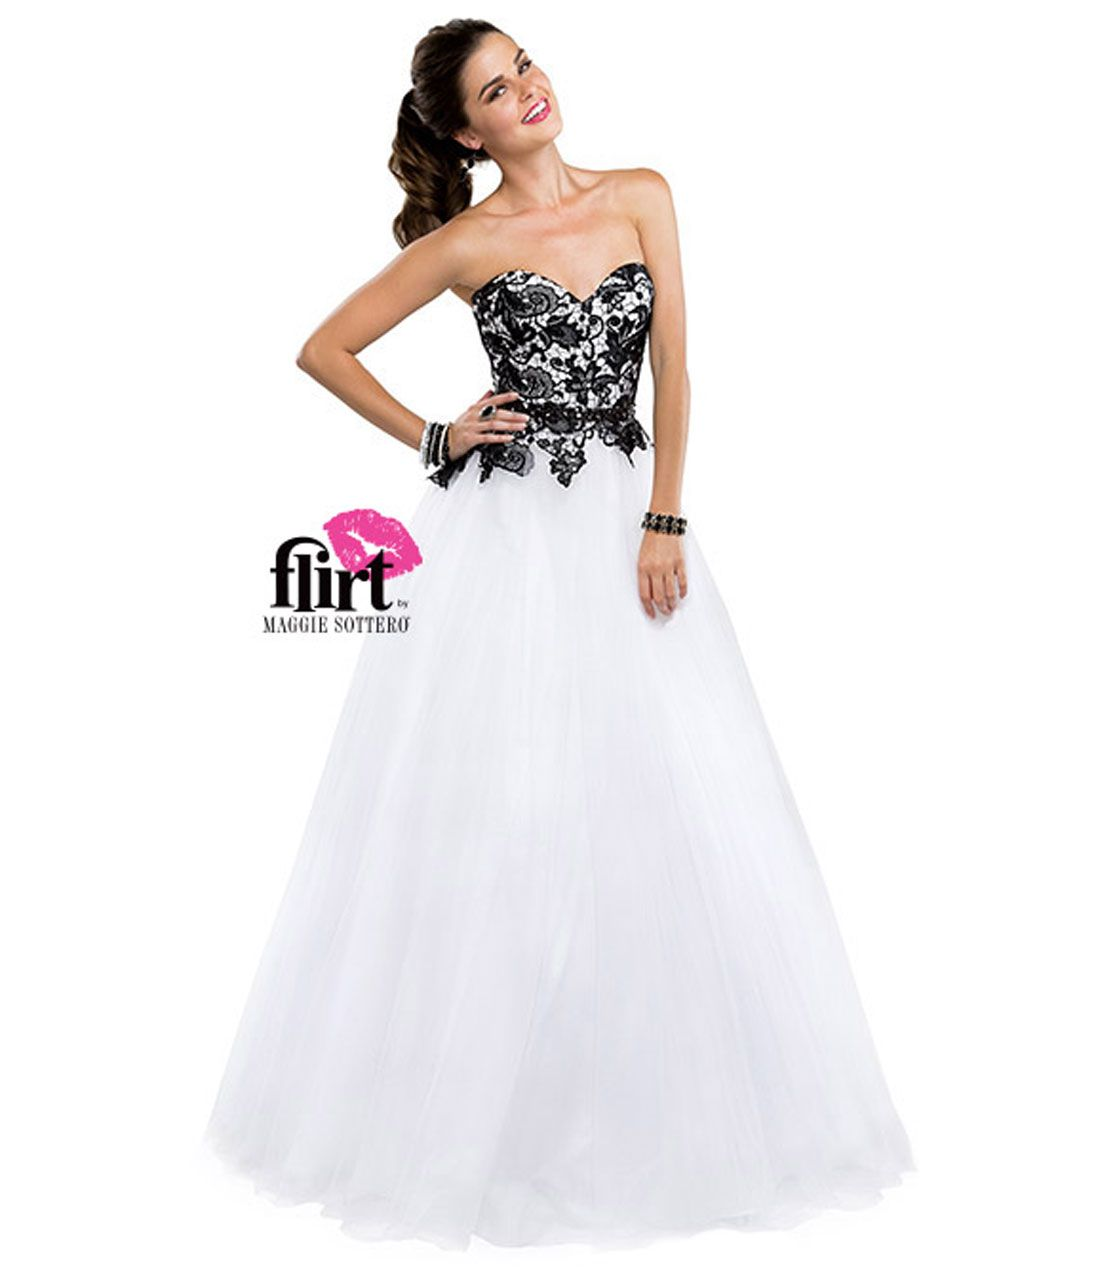 black and white ball dresses - Dress Yp